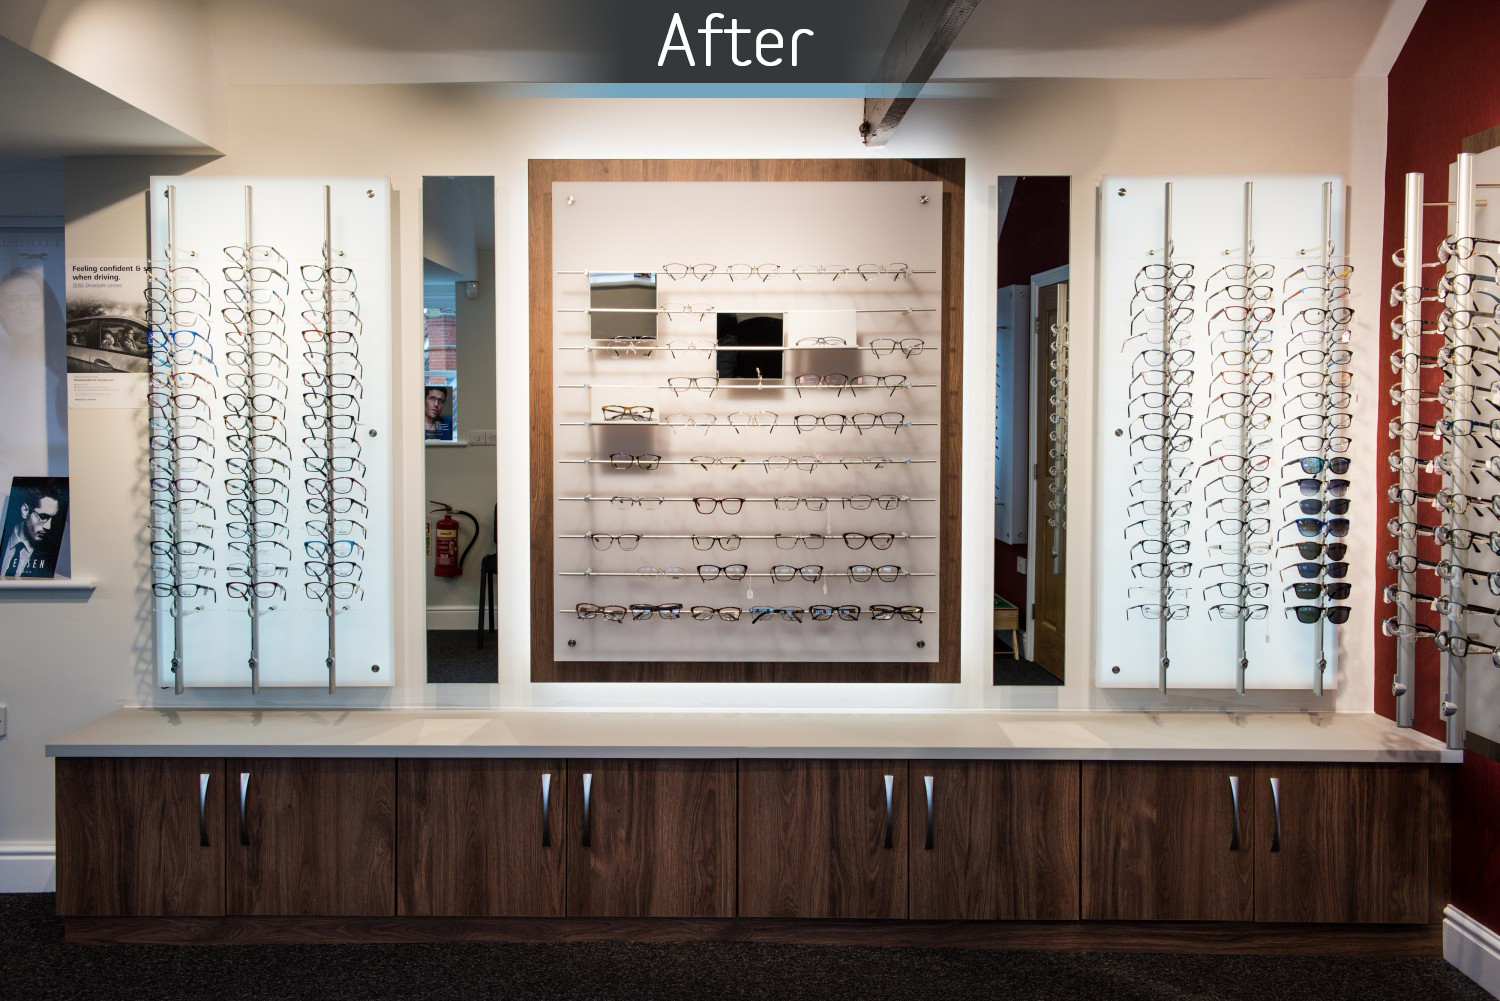 Martin Storey opticians retail display after commercial Interior design and refurbishment by Mewscraft